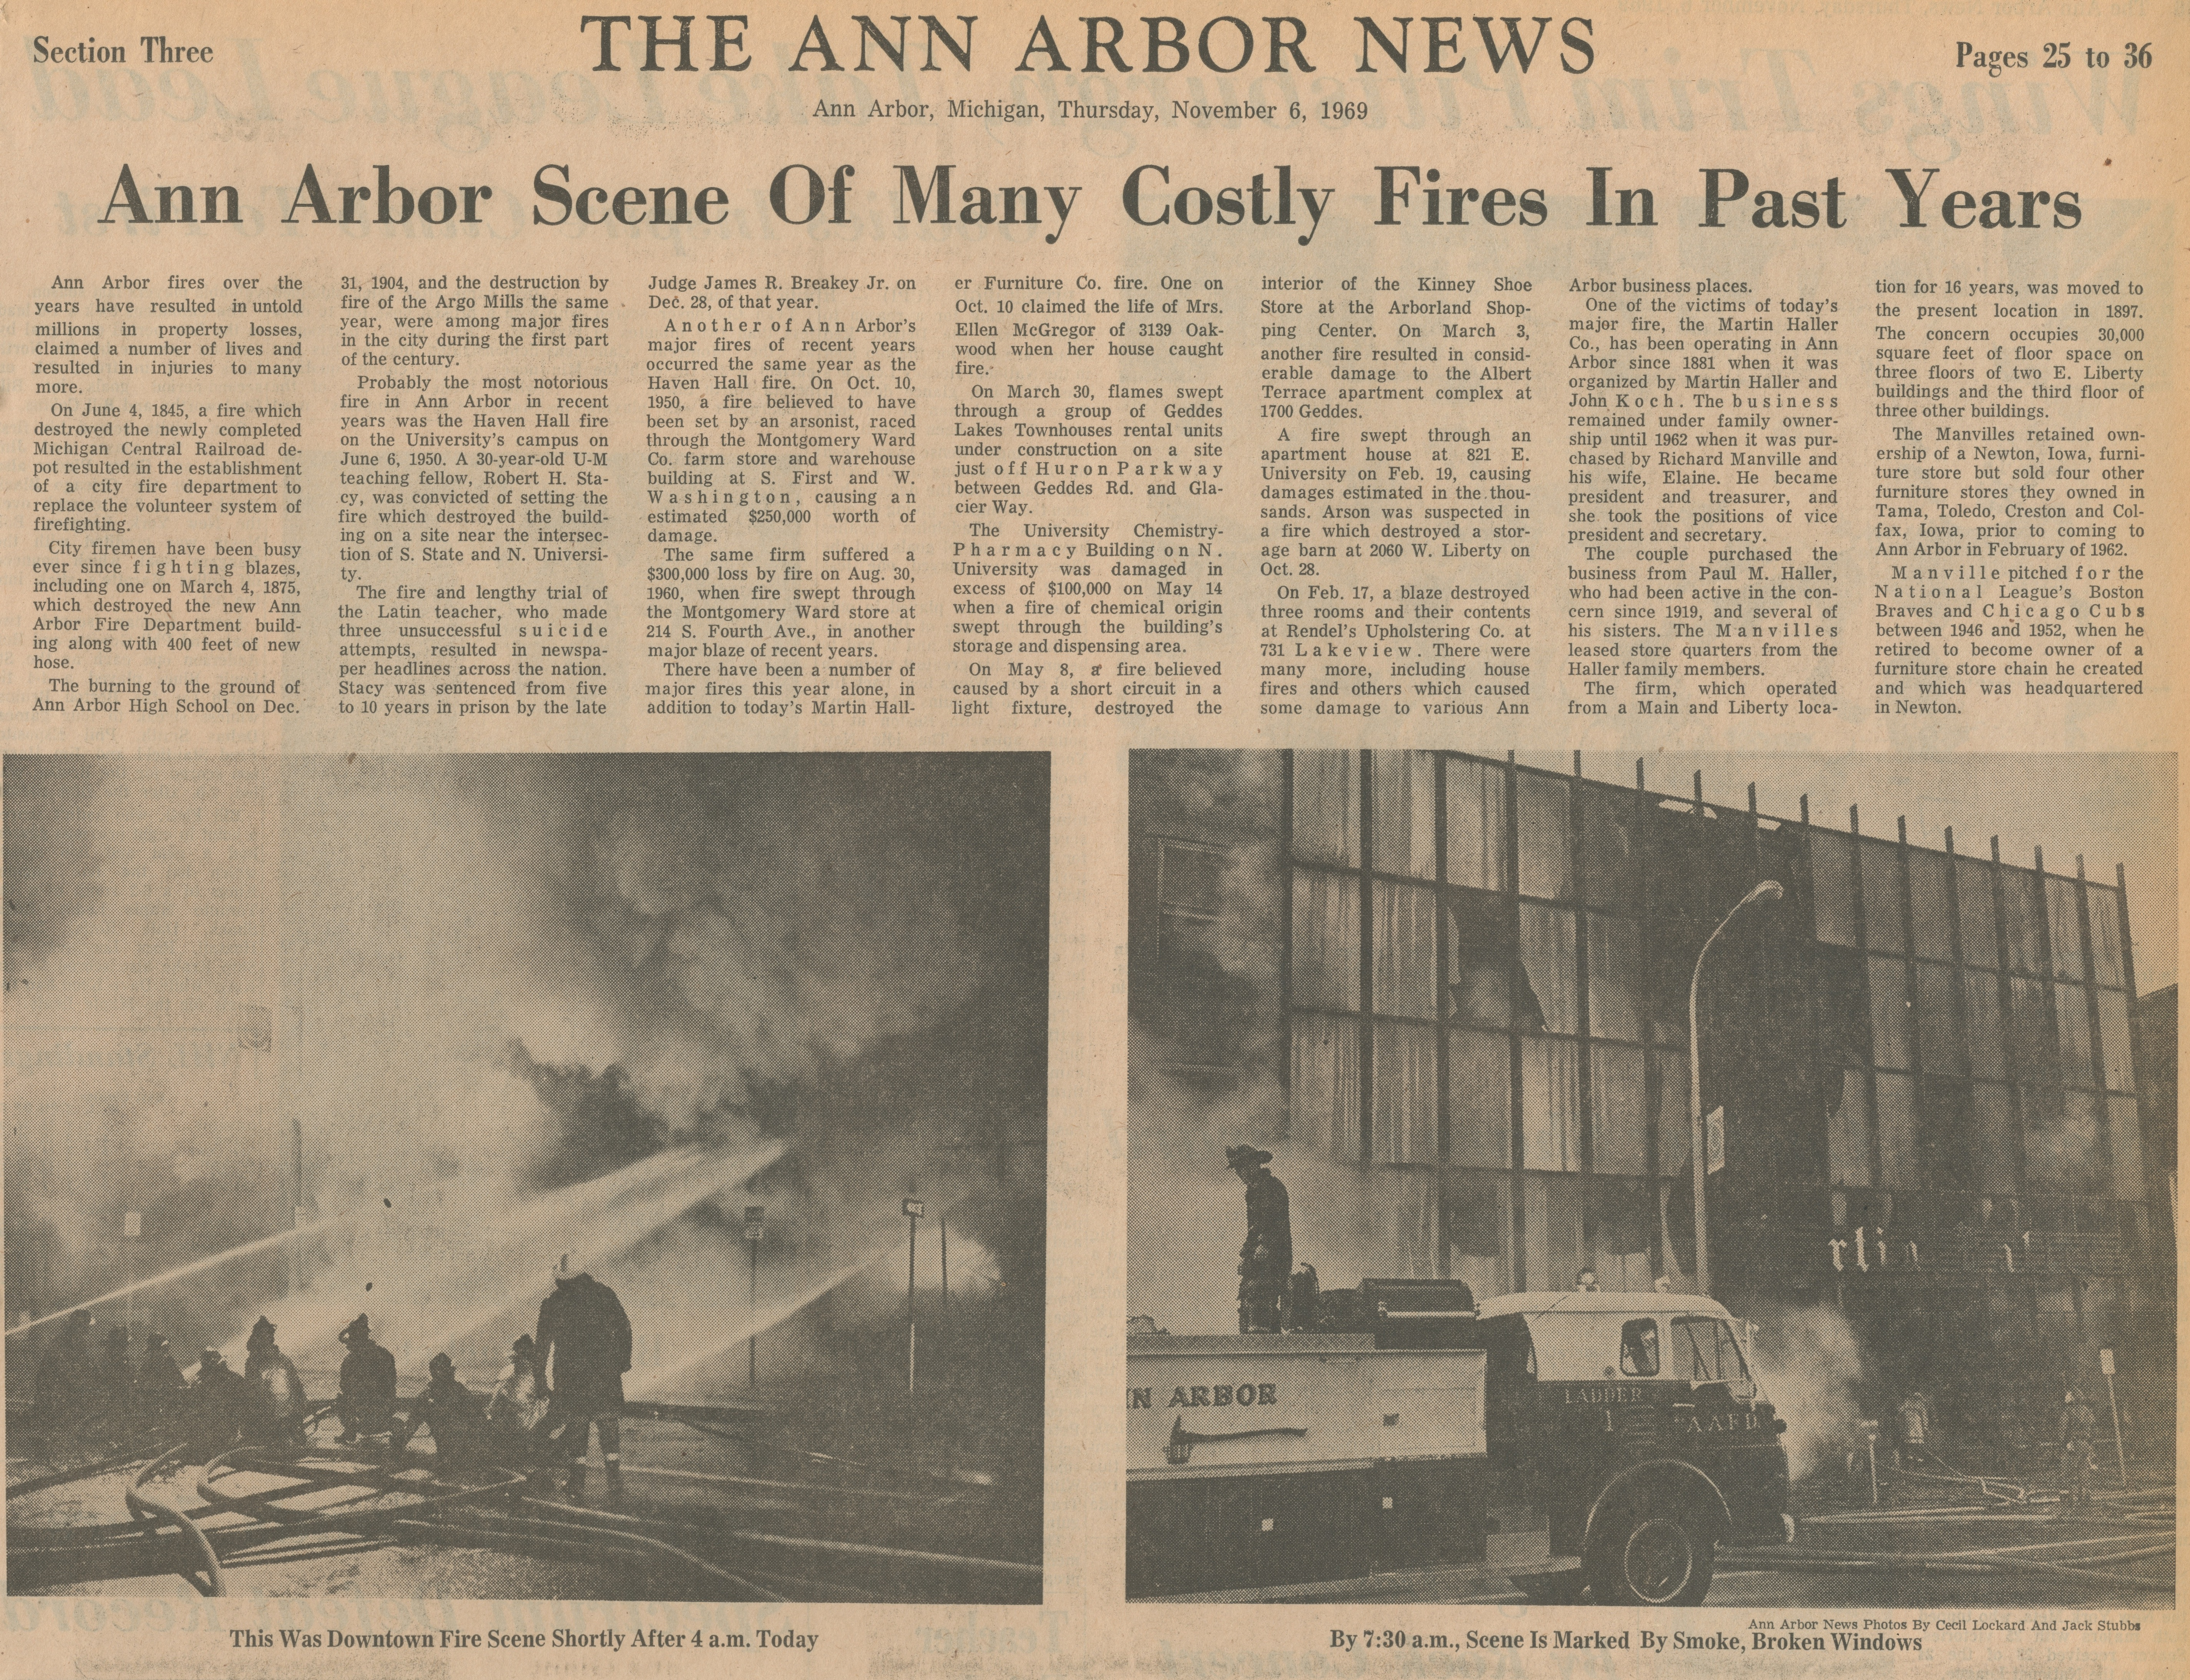 Ann Arbor Scene Of Many Costly Fires In Past Years image